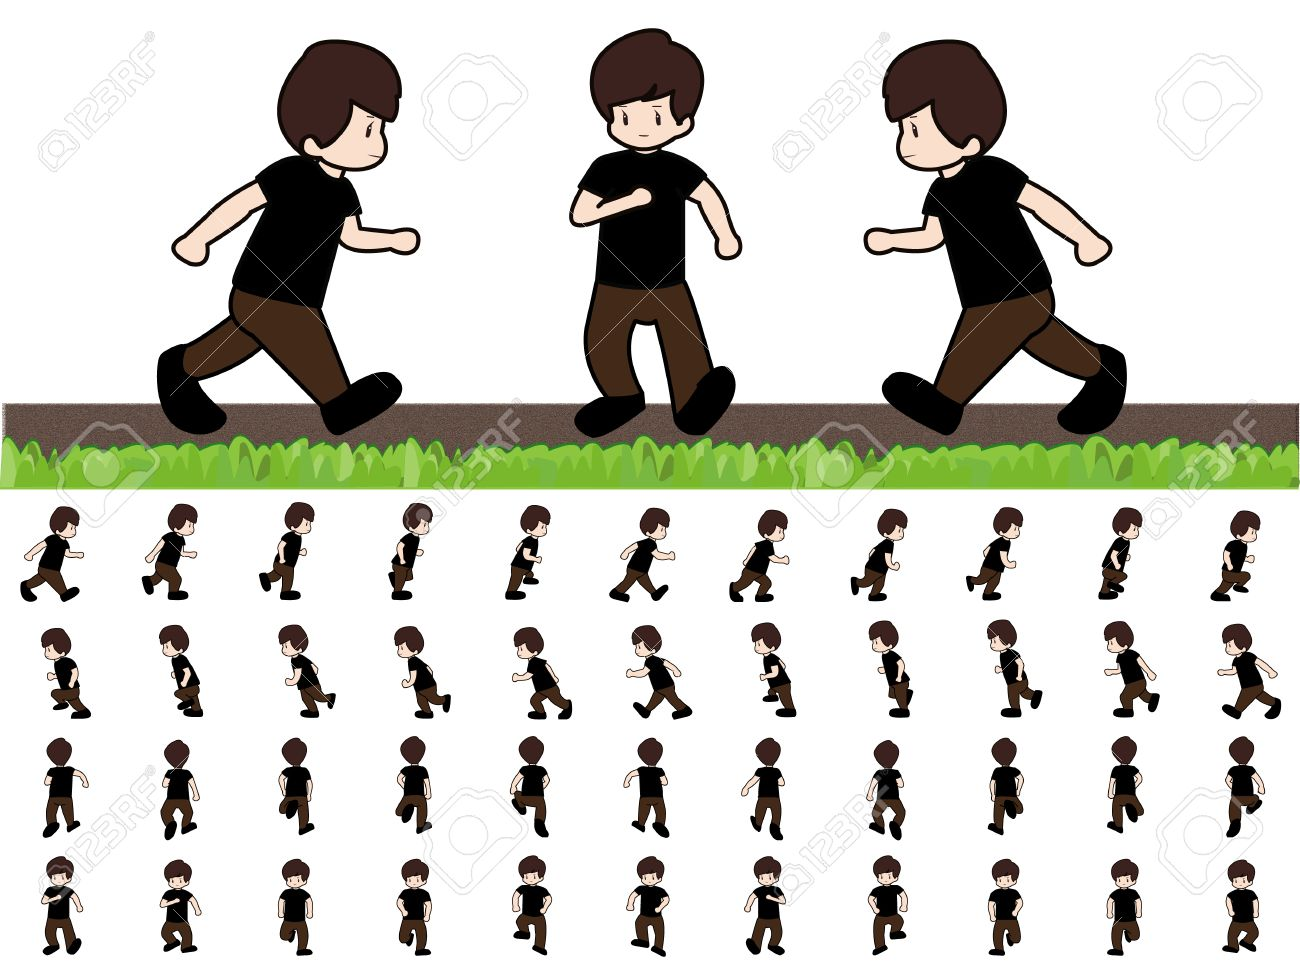 Man Frames Running Walk Sequence For Game Animation Royalty Free ...